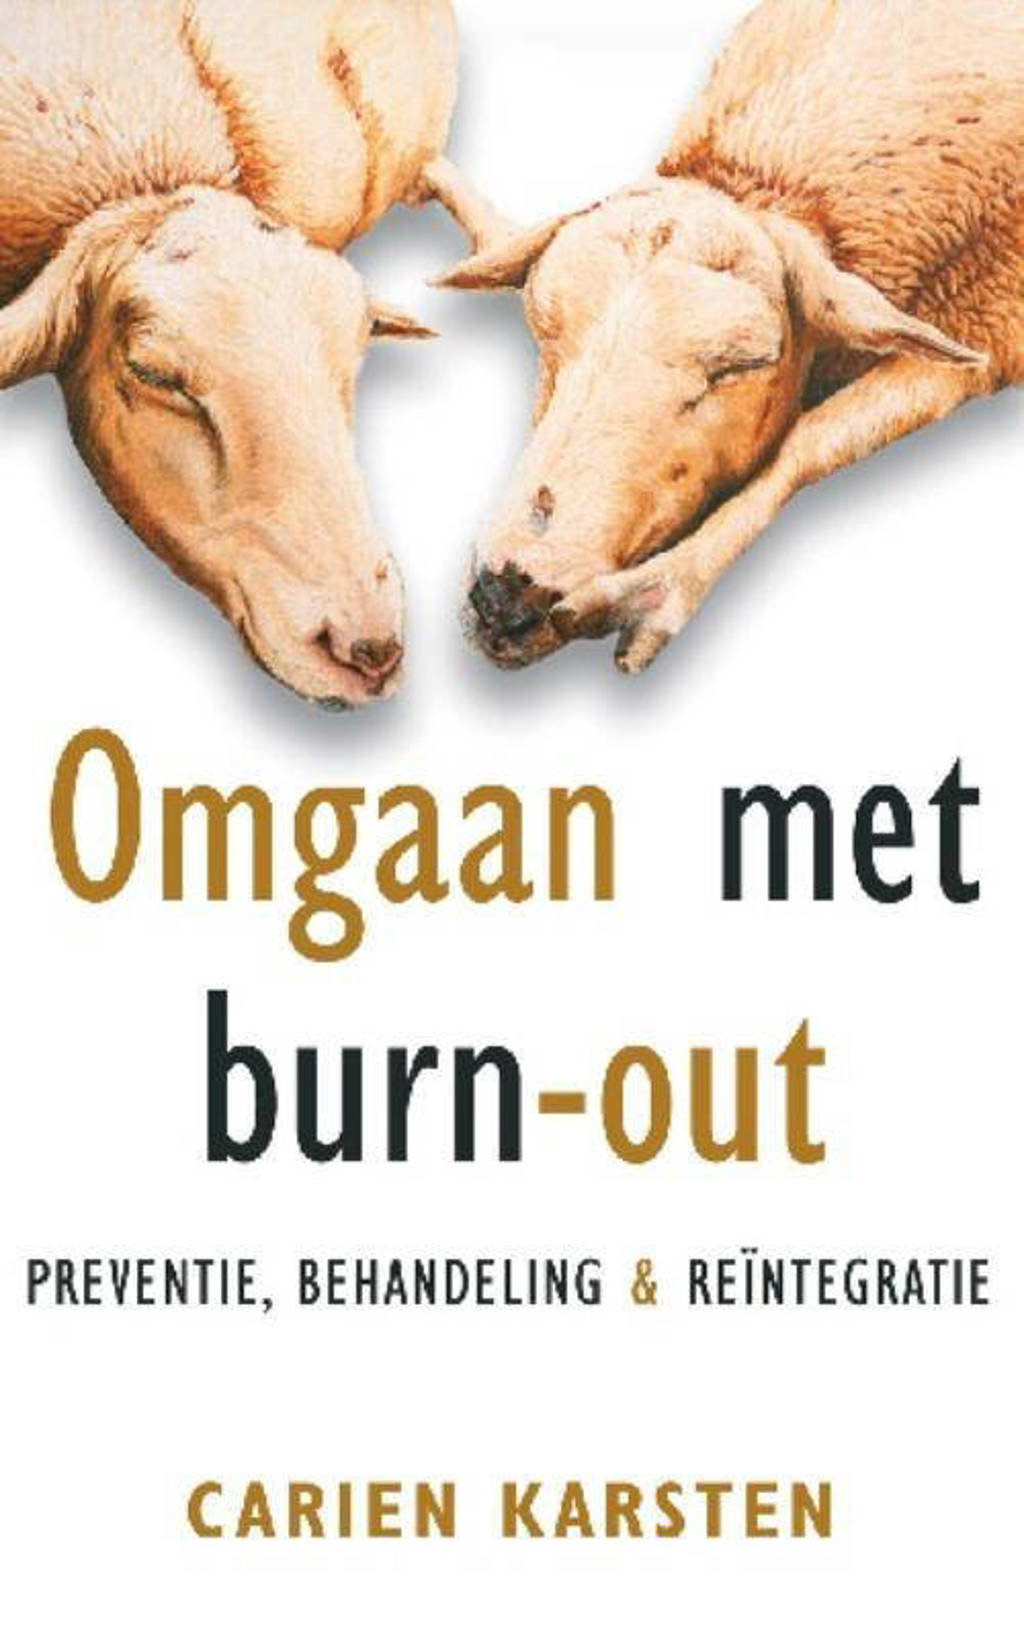 Omgaan met burn-out - Carien Karsten